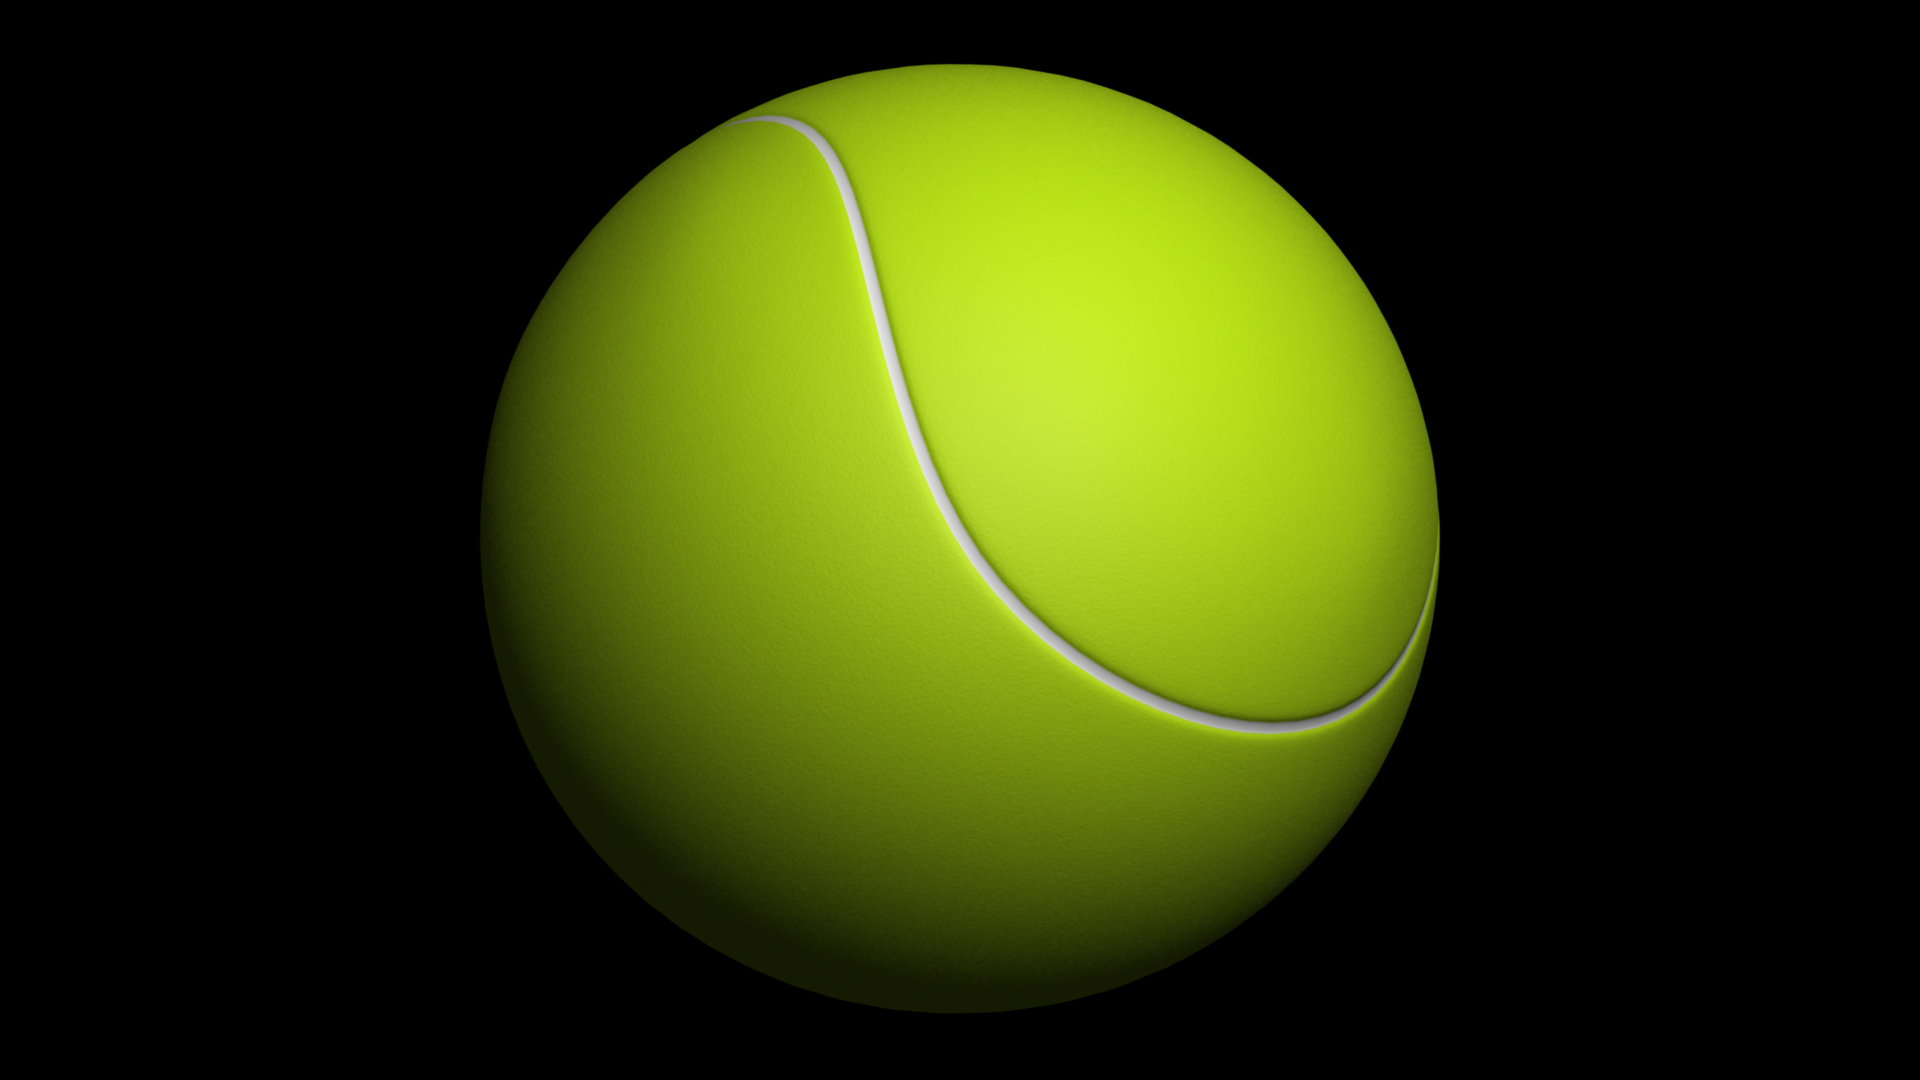 Big Green Tennis Ball